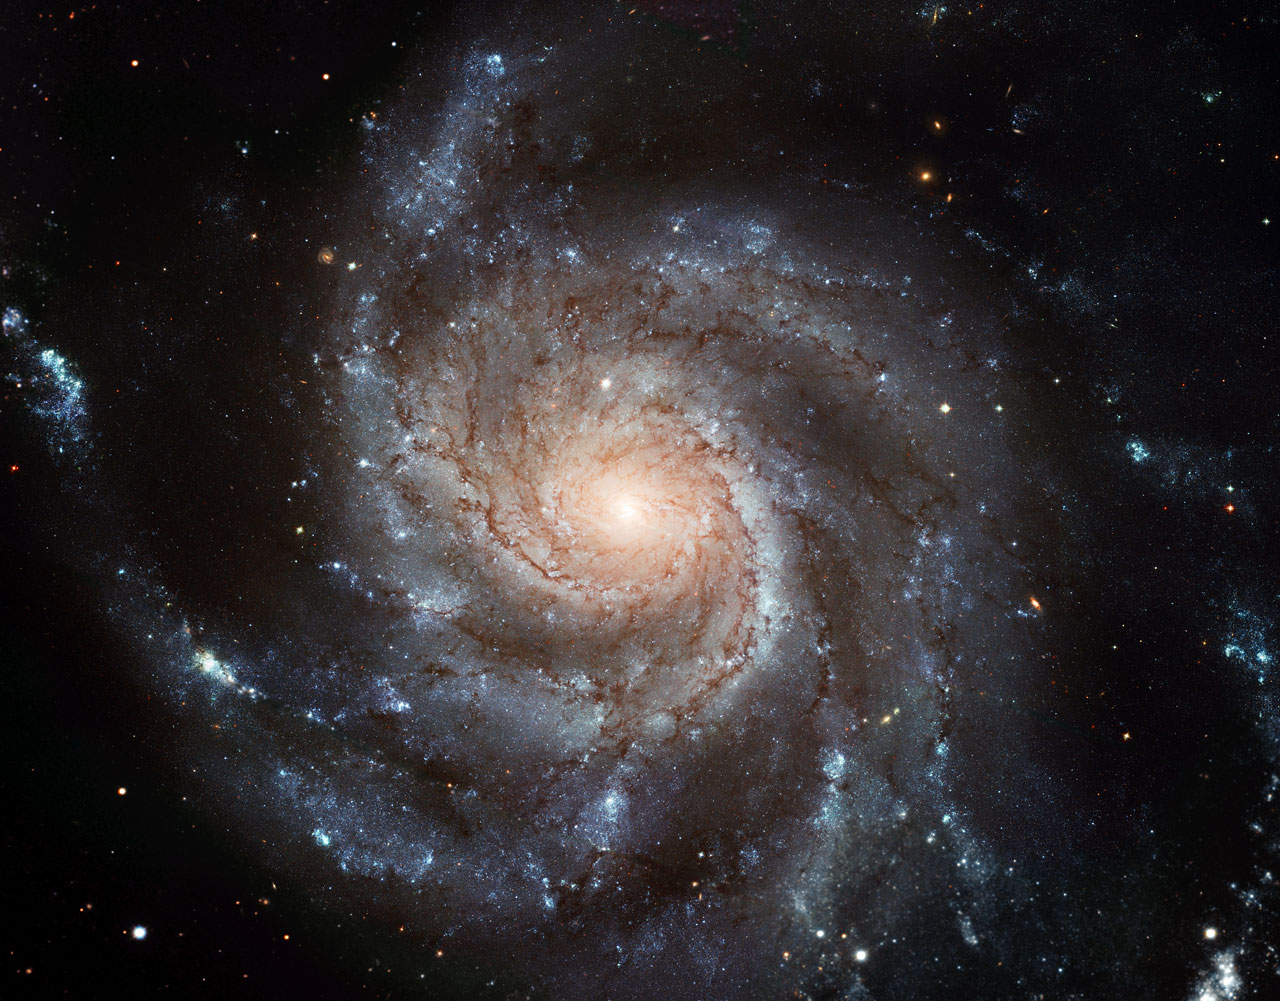 Largest ever Hubble galaxy portrait - stunning HD image of ...